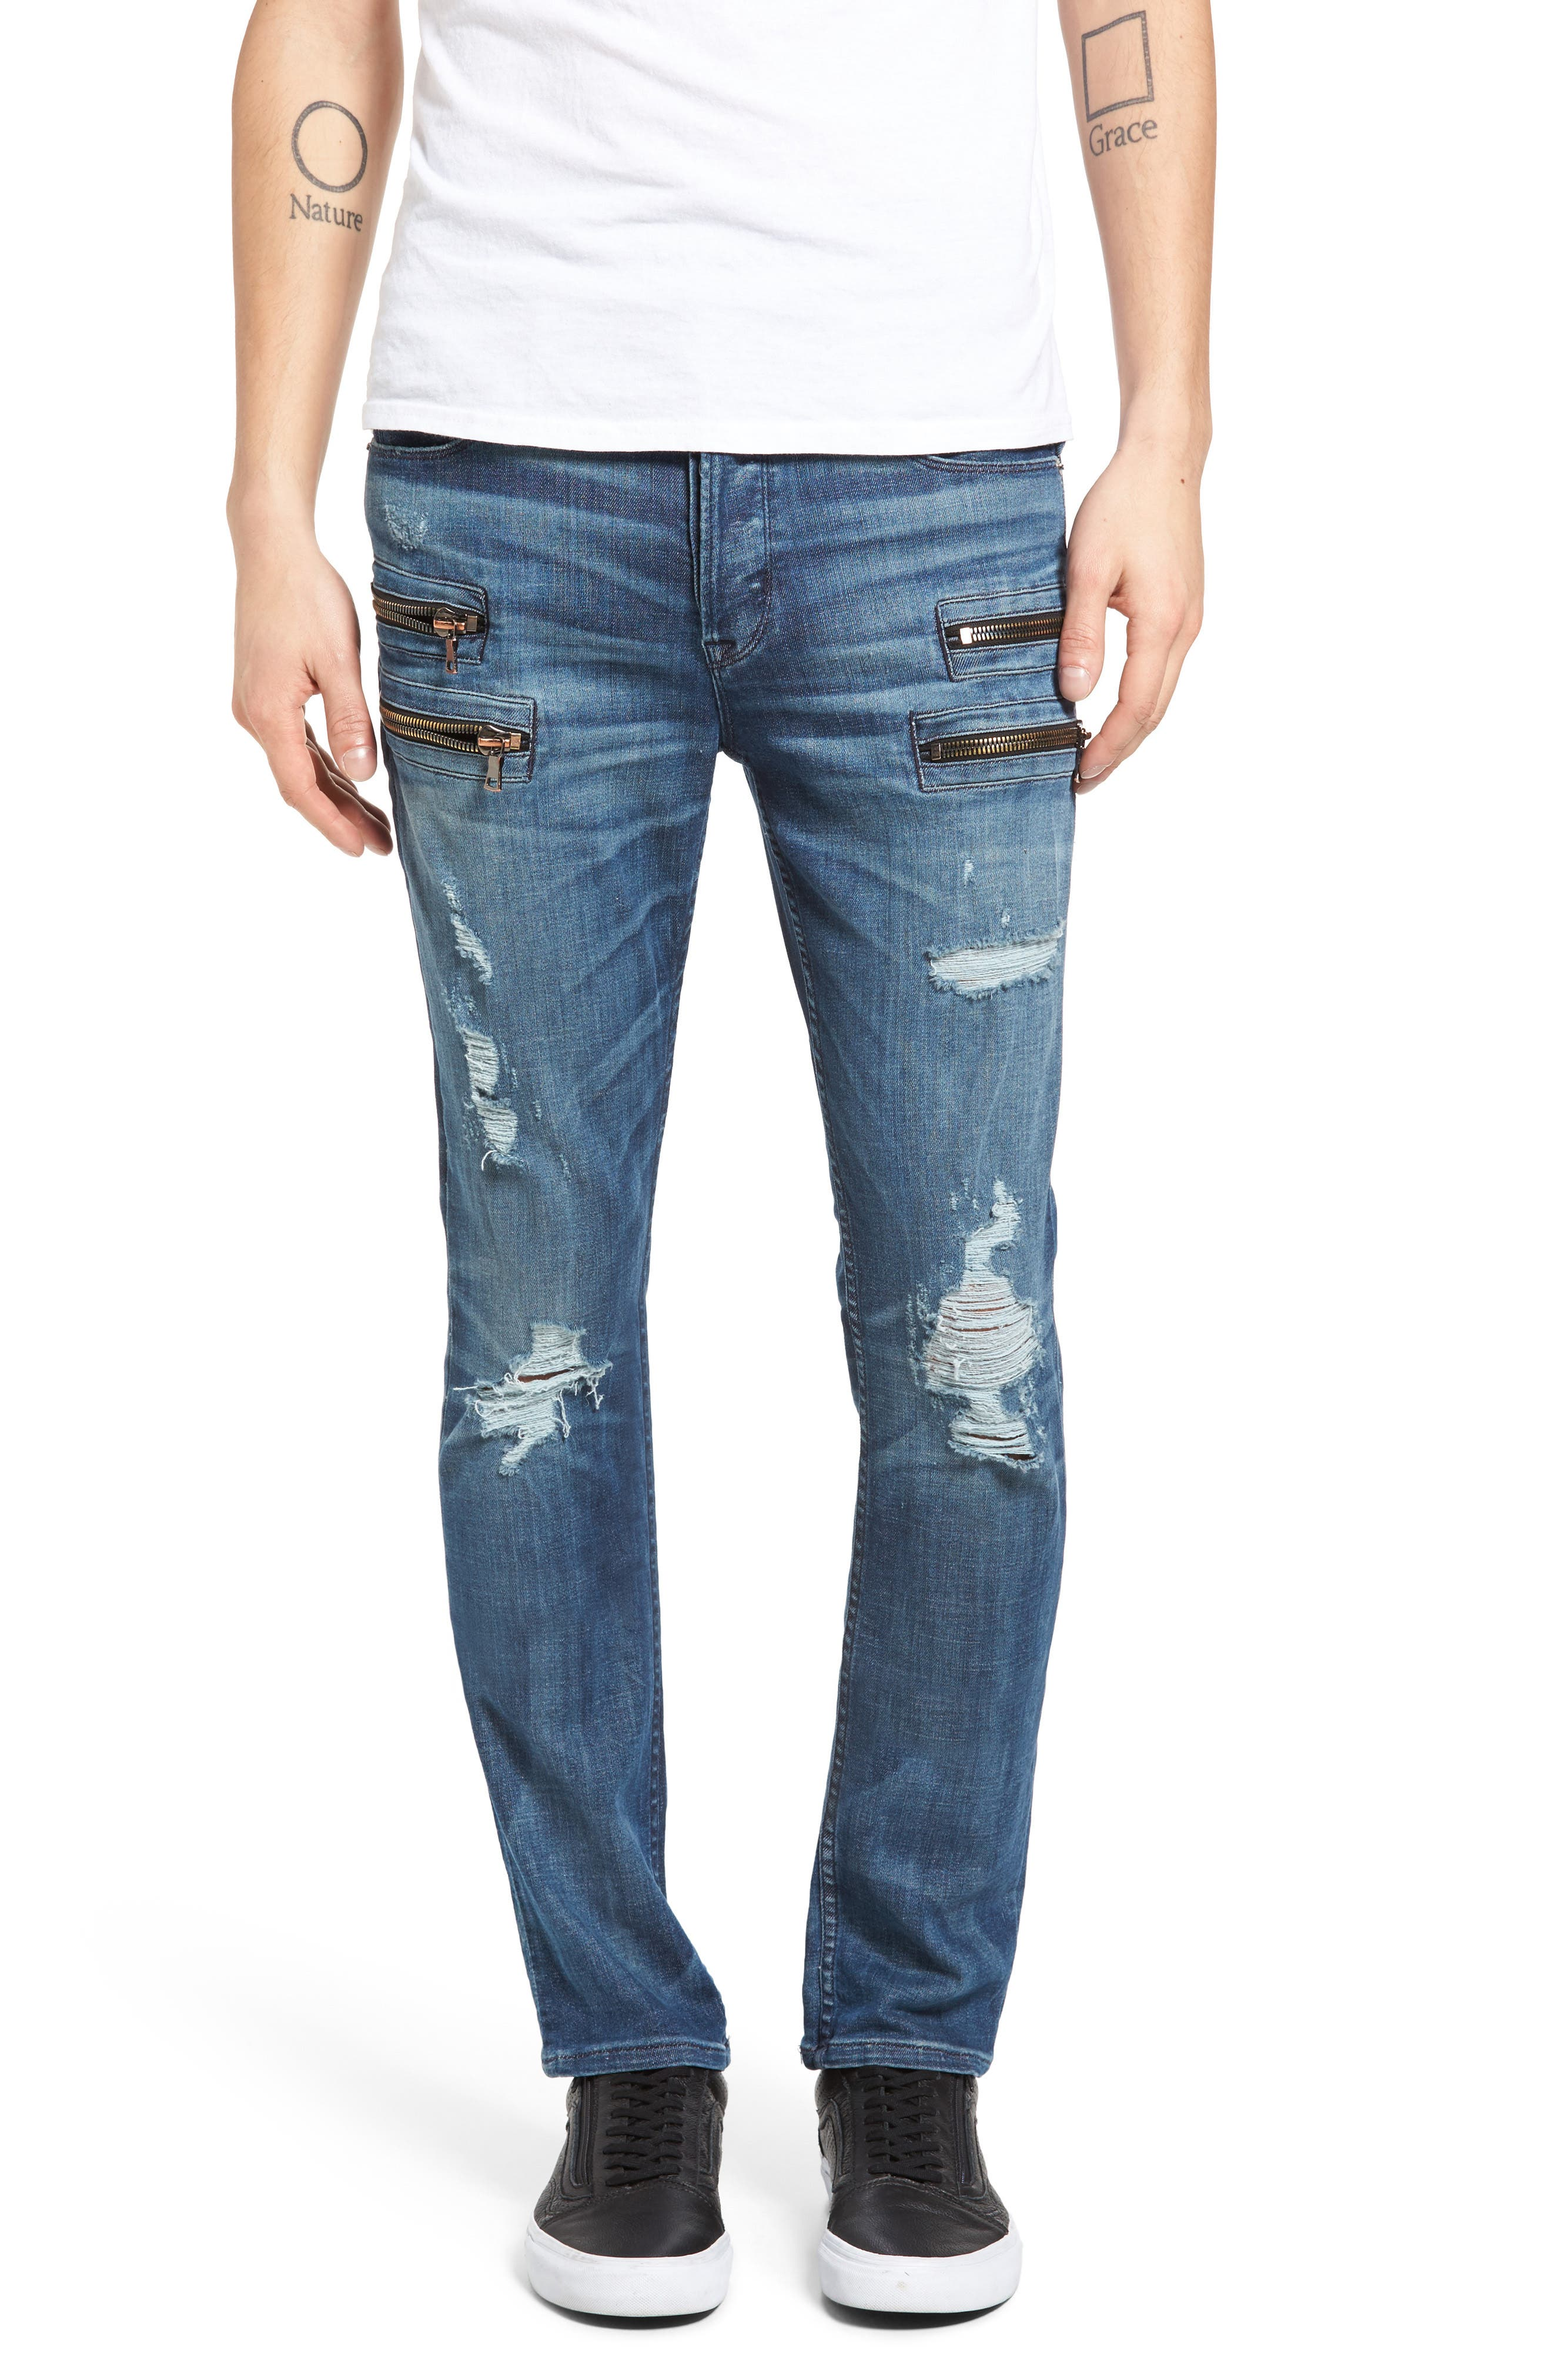 Alternate Image 1 Selected - Hudson Jeans Broderick Biker Skinny Fit Jeans (Hayday)